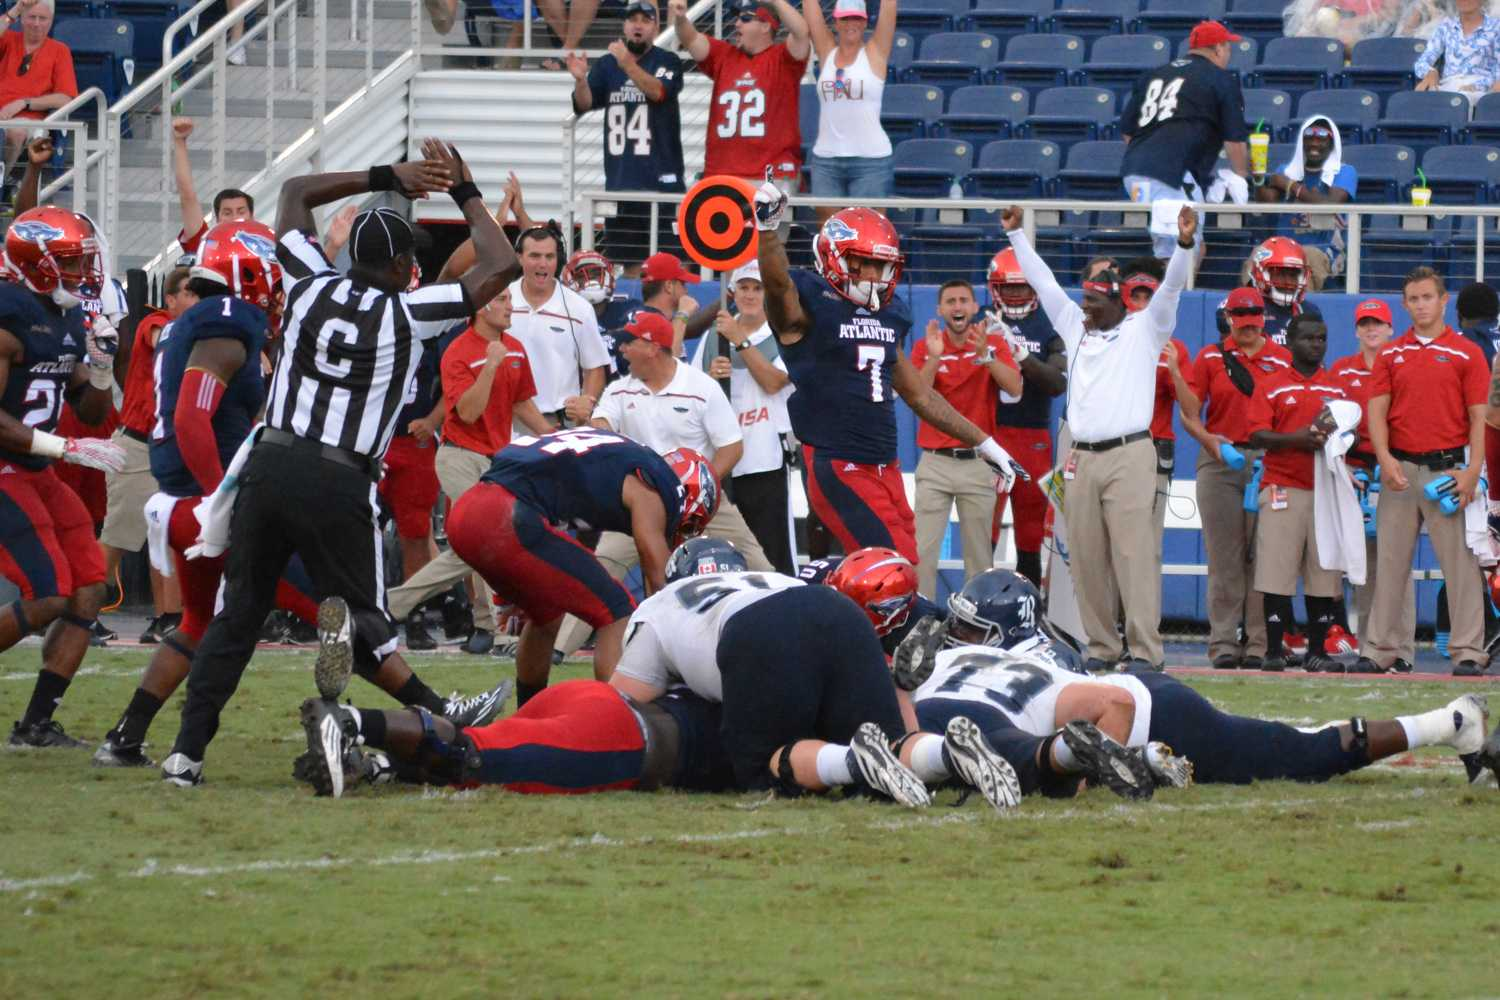 Freshman wide receiver Tavaris Harrison (7) and coaches celebrate after the FAU Owls take down Rice's offense. Emily Creighton | Features Editor